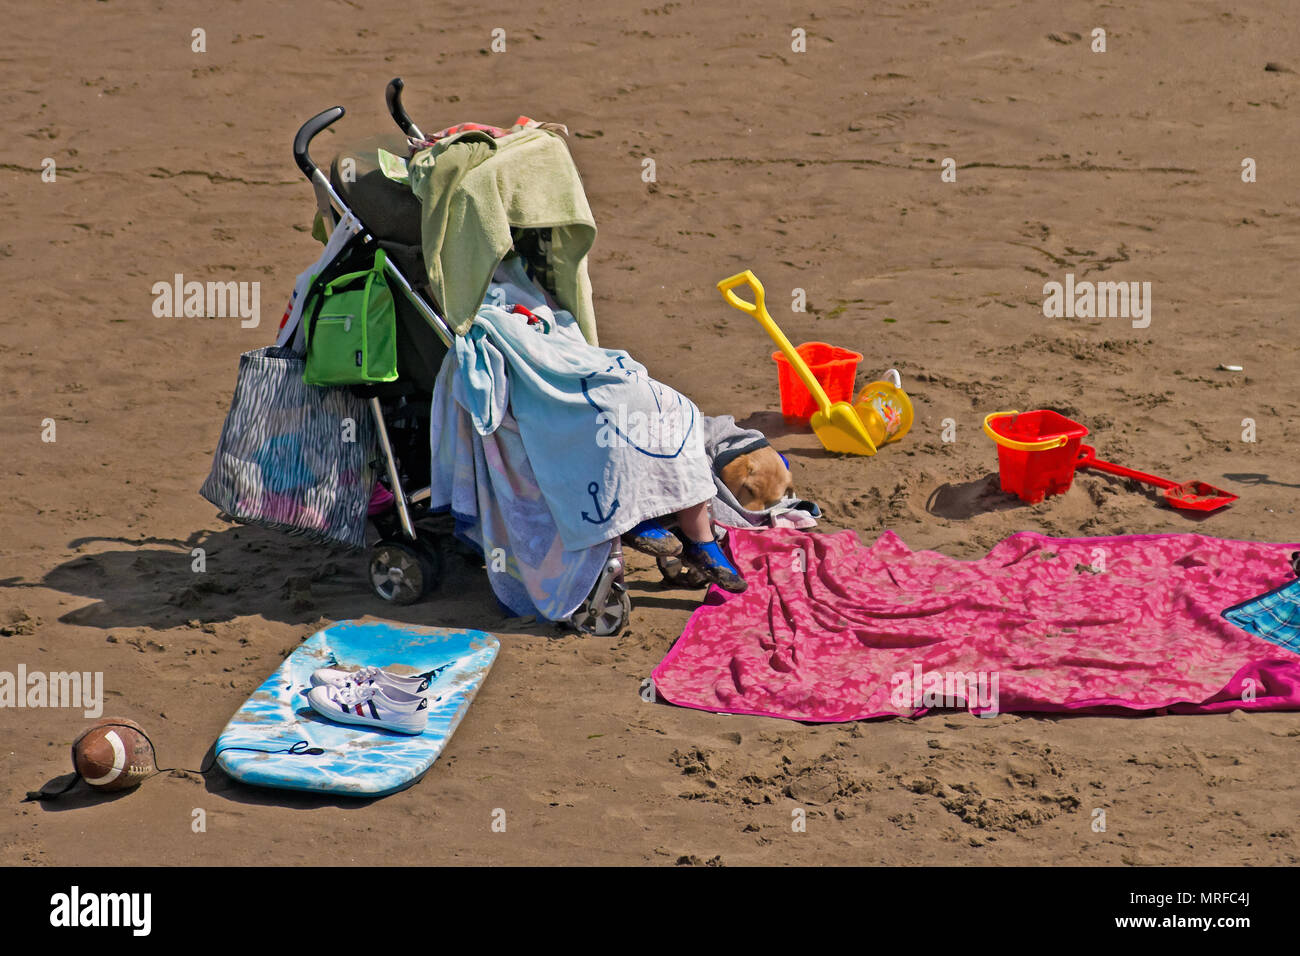 Sun-screened to the Max! Two sunbathers enjoy the summer sun on Scarborough's North Bay beach - Stock Image